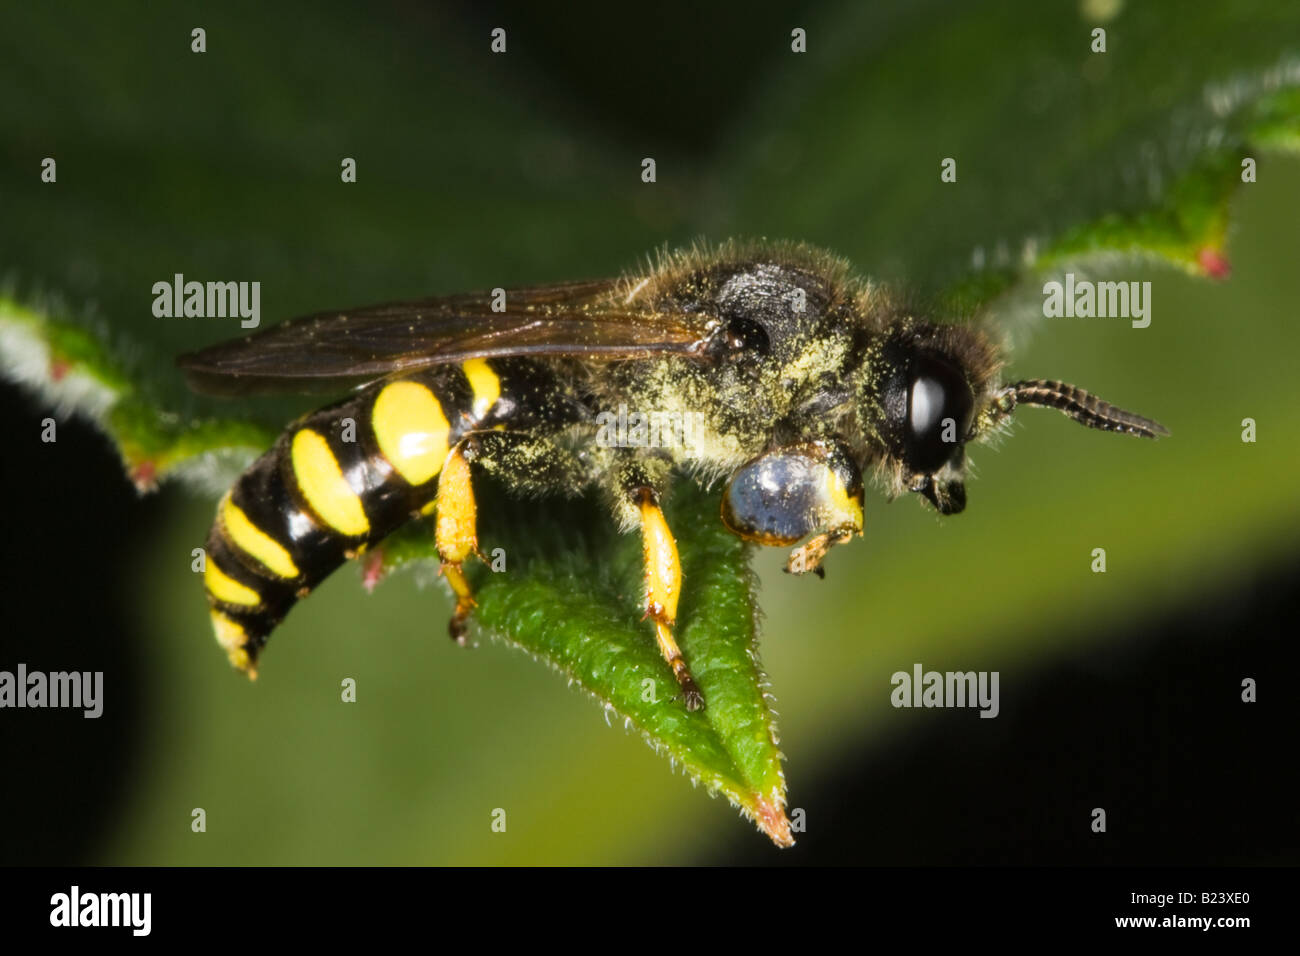 male Slender-bodied Digger Wasp (Crabro cribrarius) - Stock Image